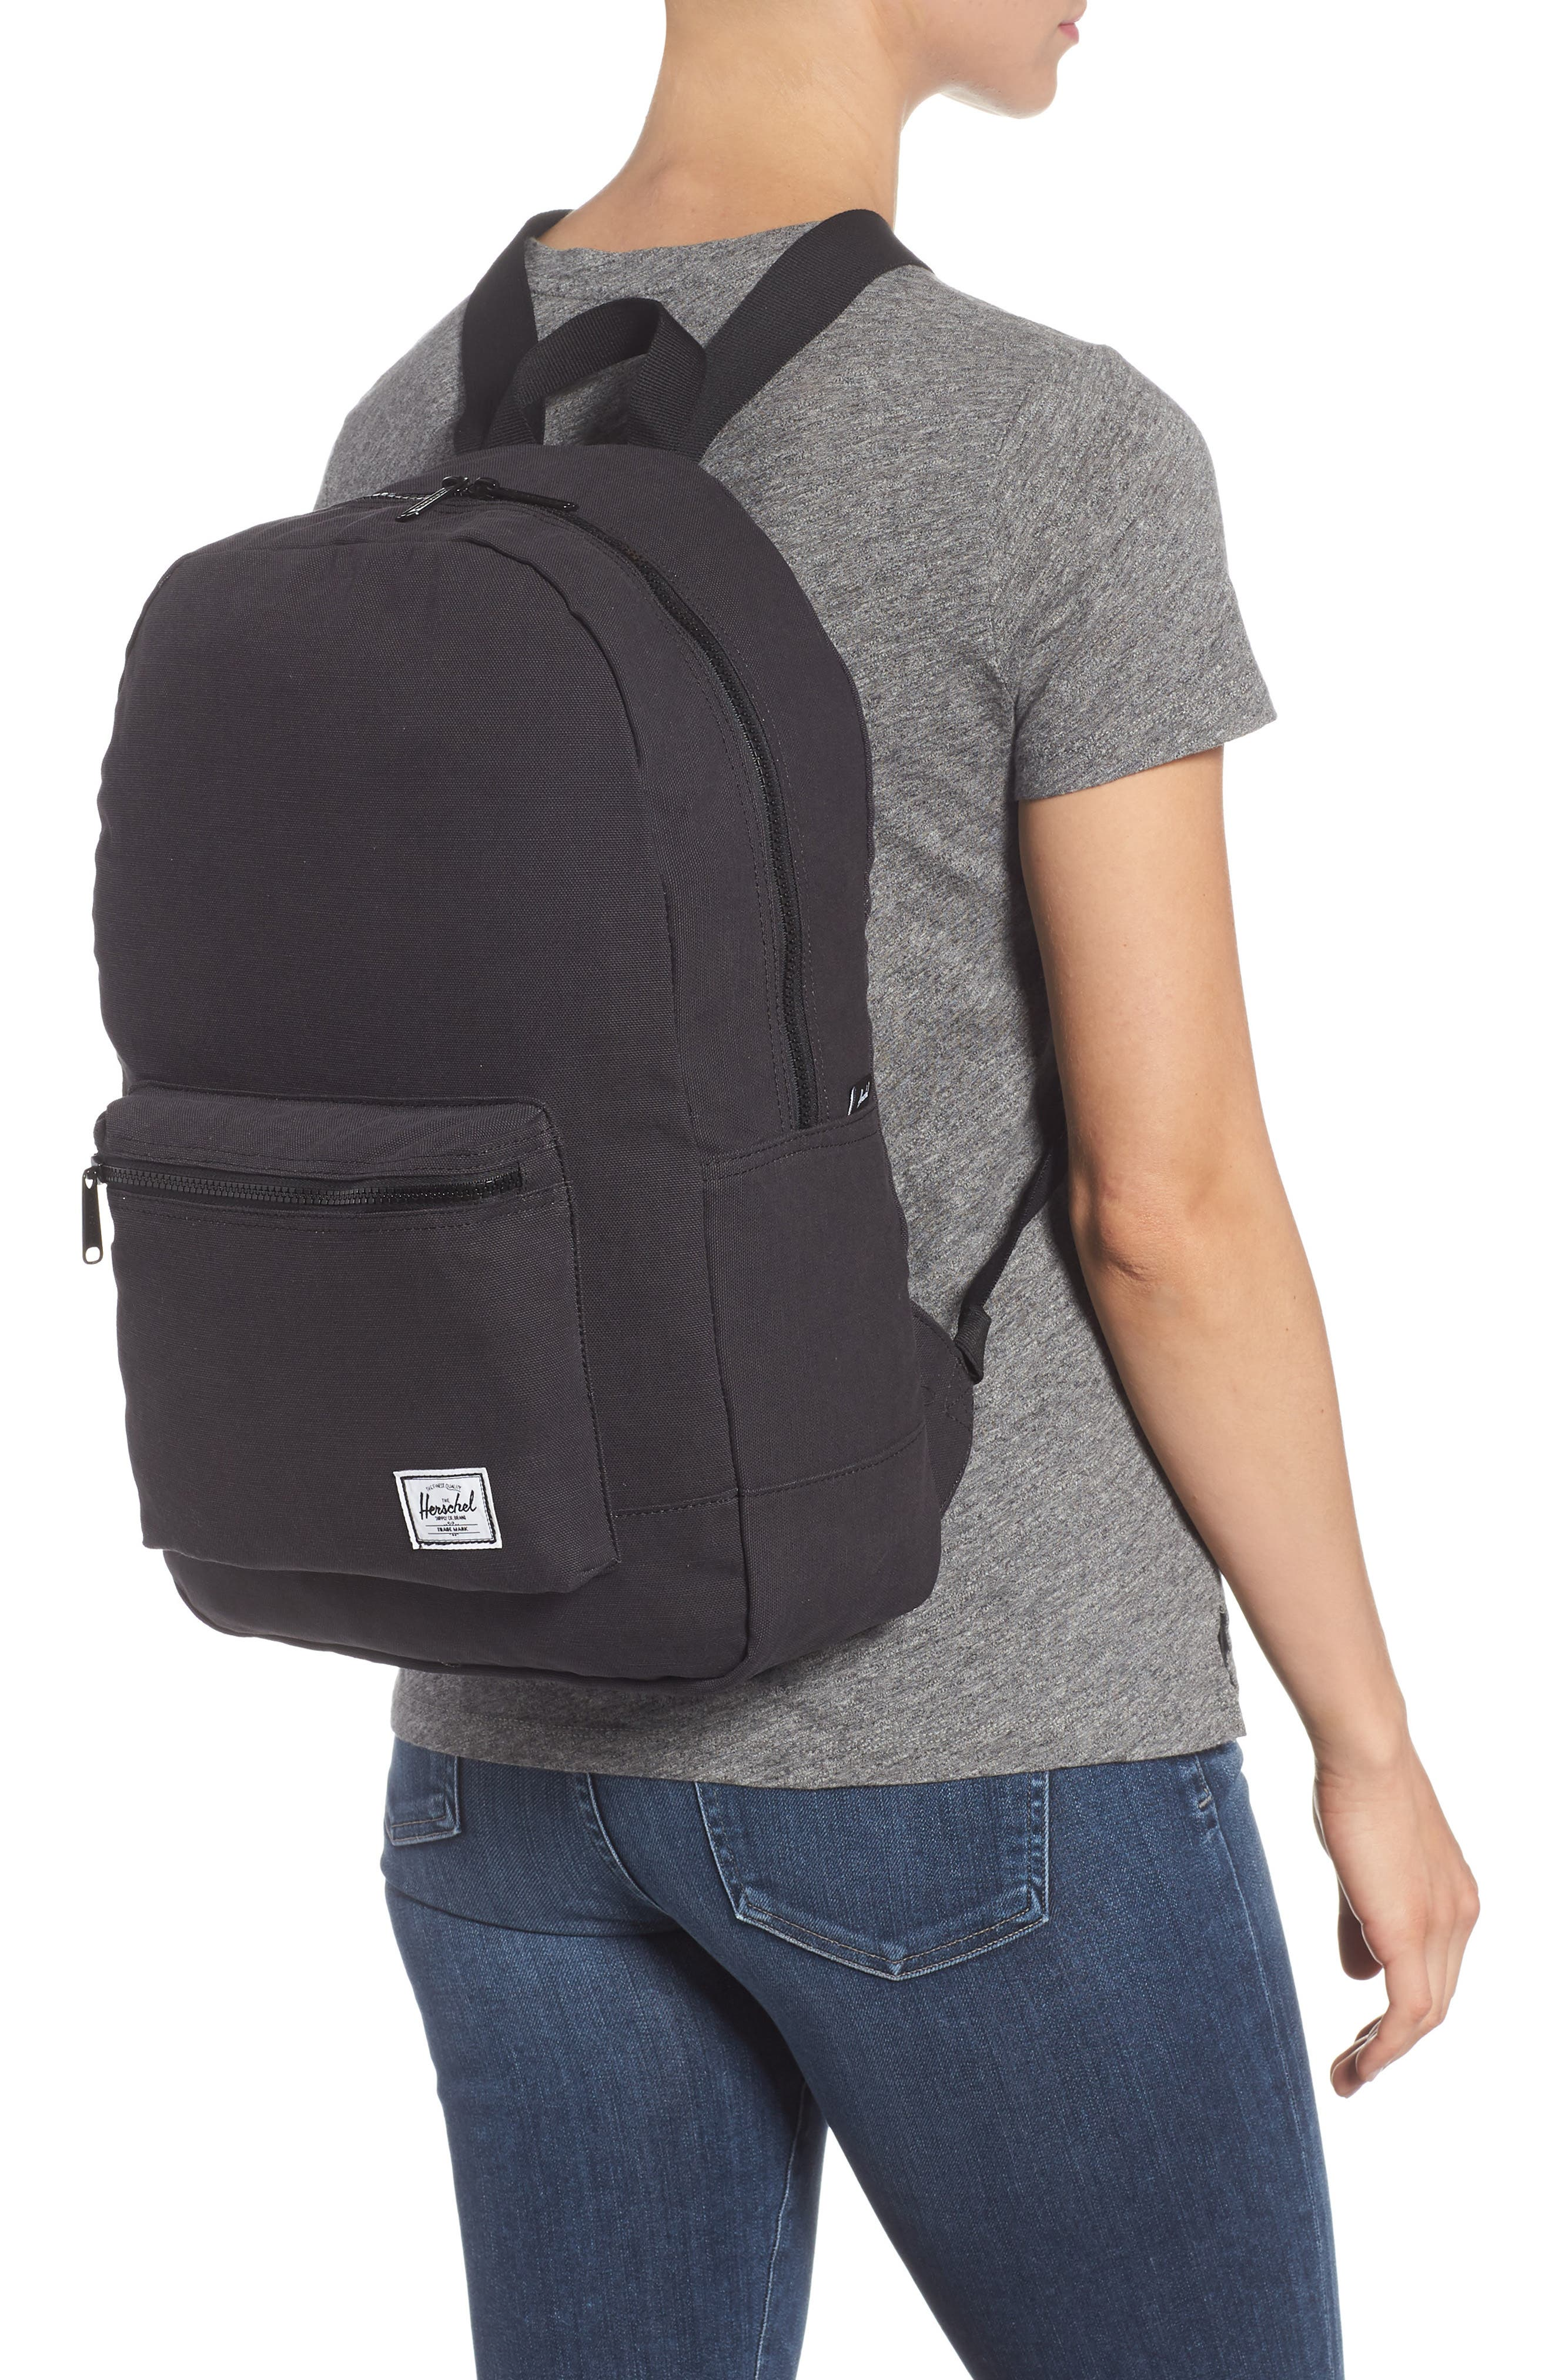 Cotton Casuals Daypack Backpack,                             Alternate thumbnail 10, color,